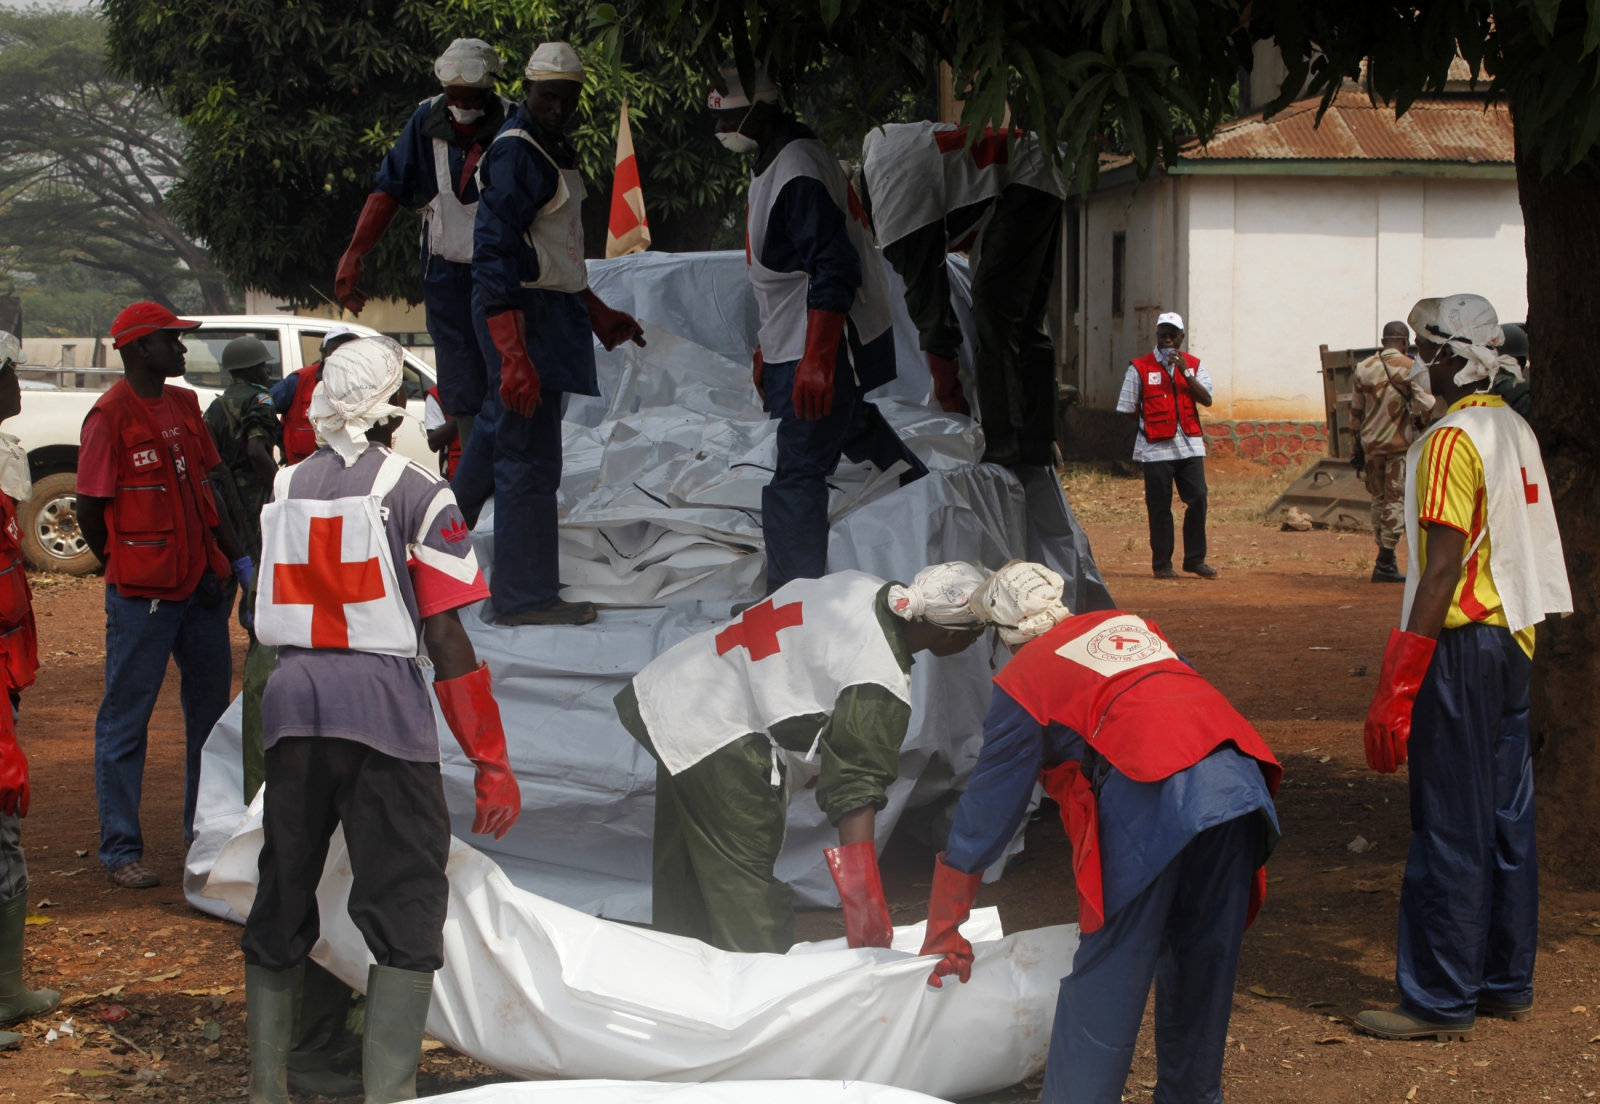 Red Cross workers often face danger, putting their lives at risk to provide humanitarian aid.